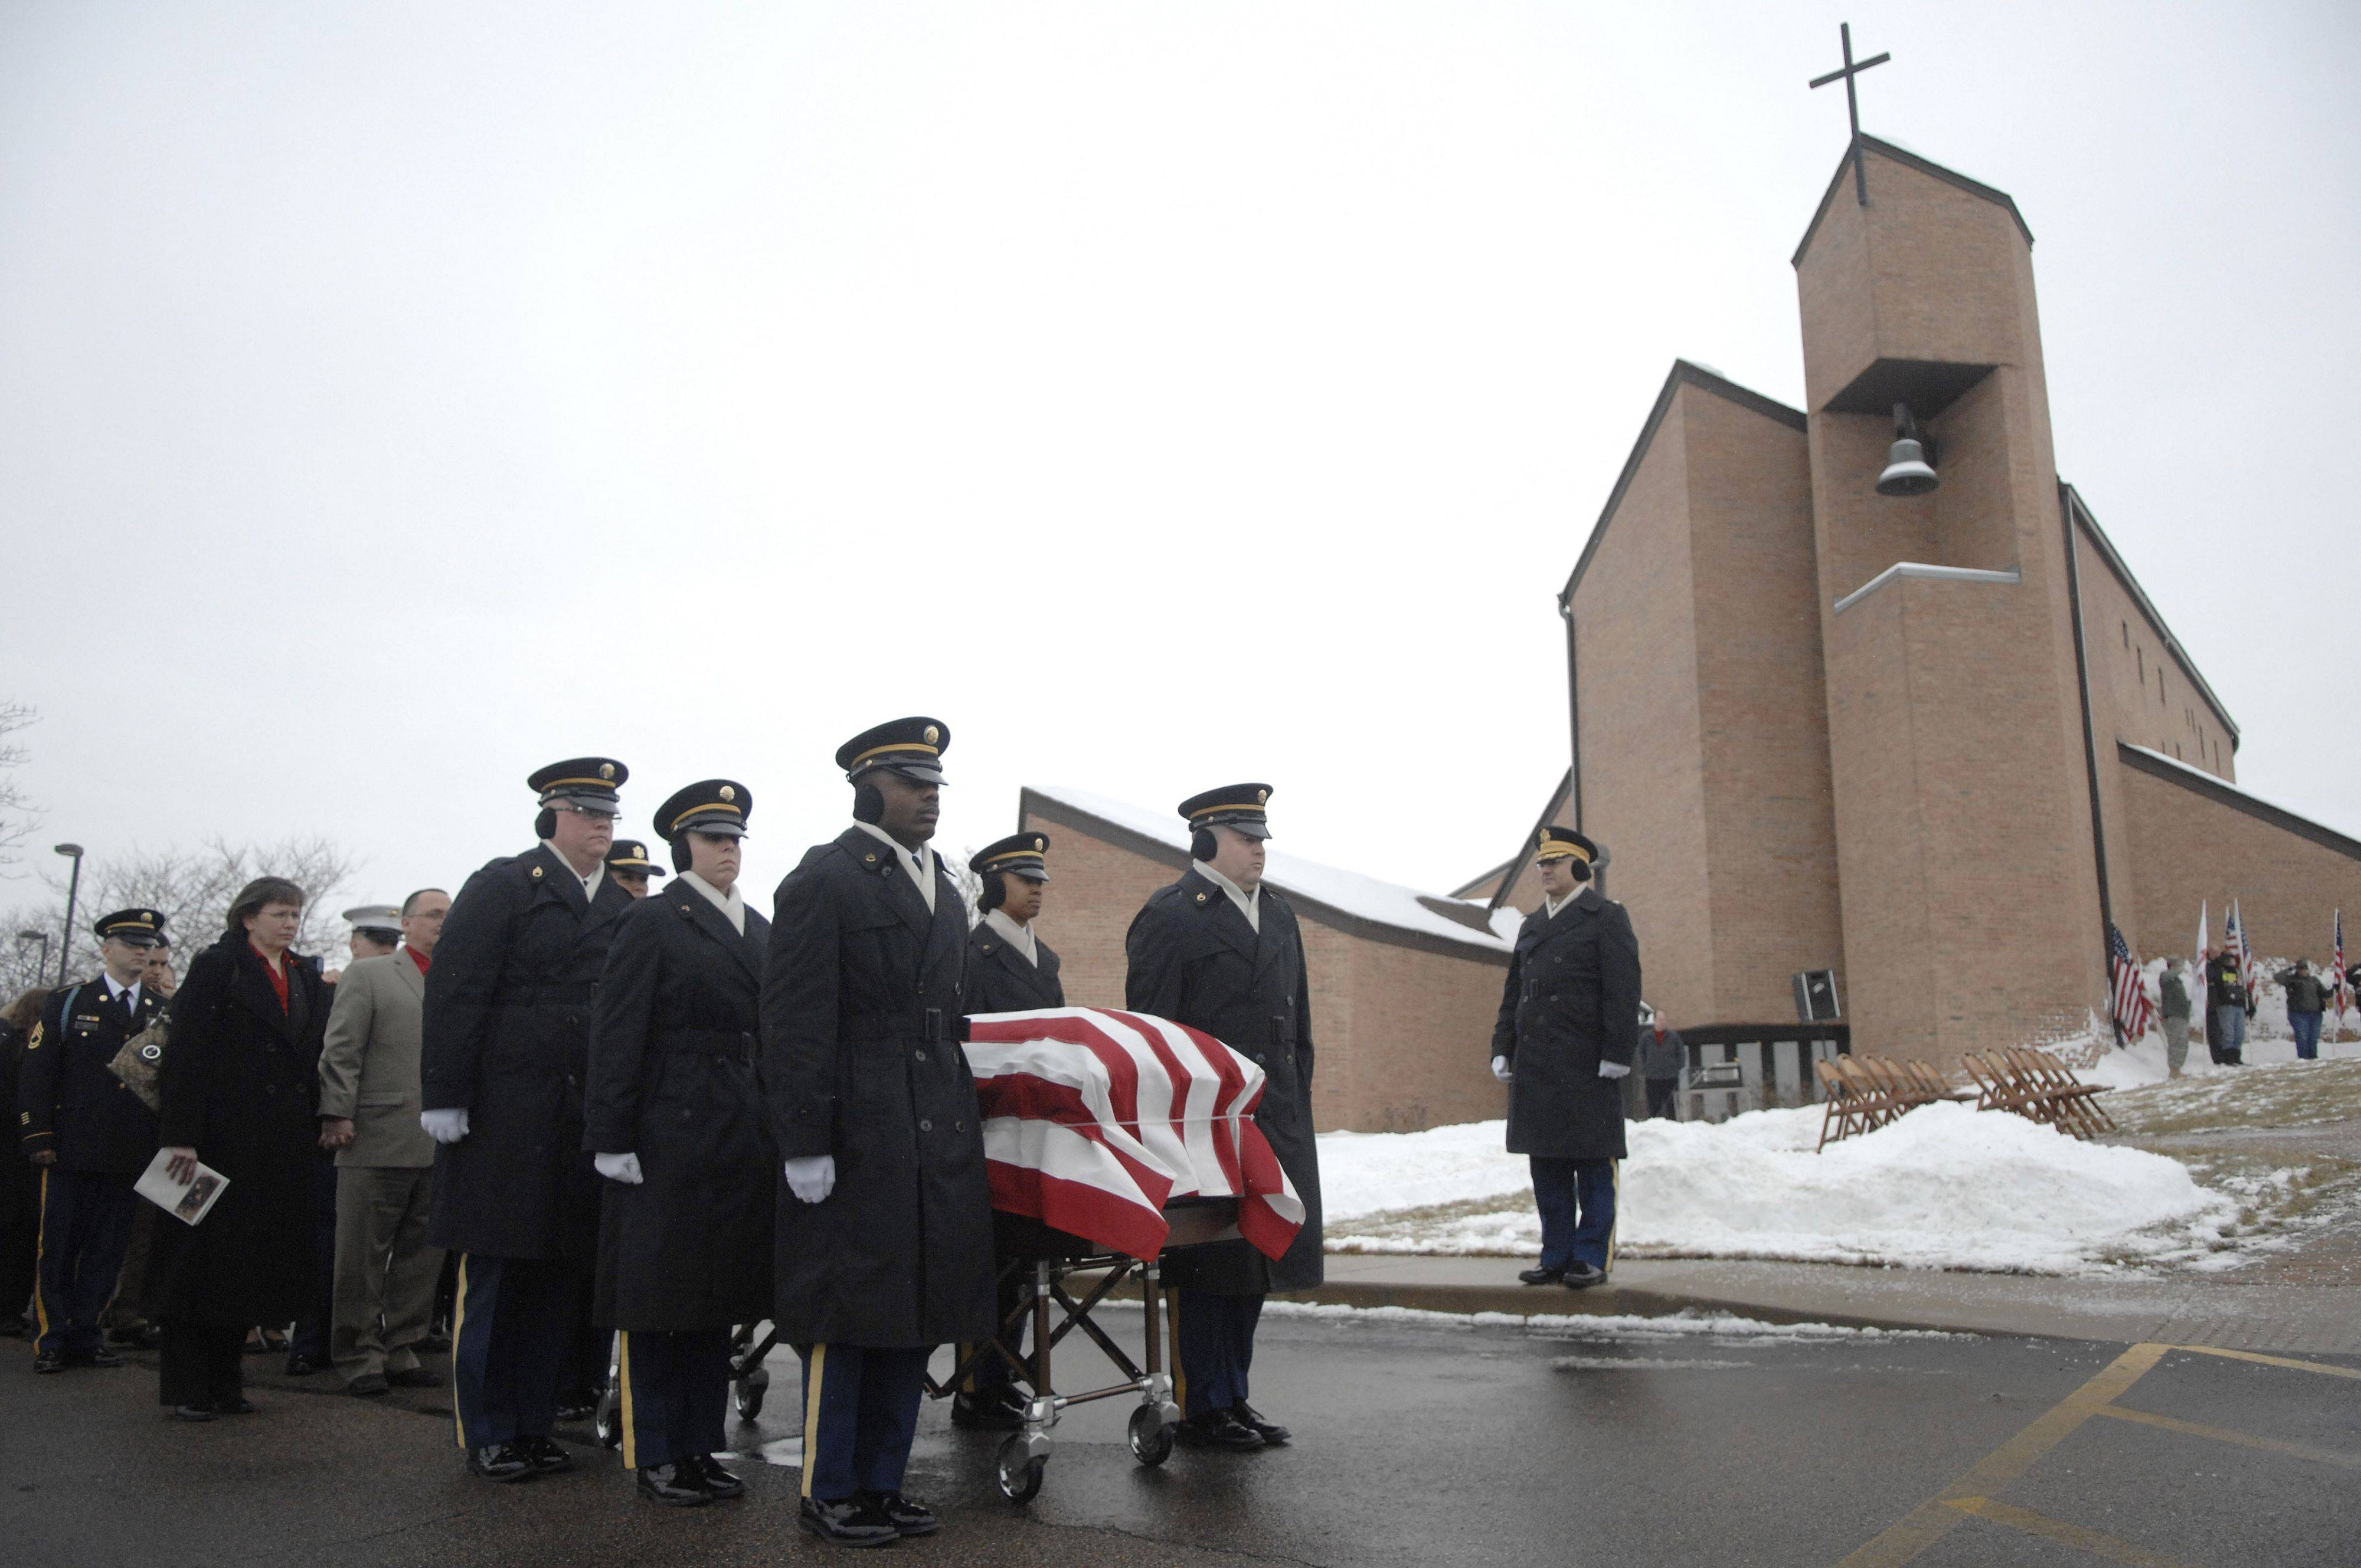 Staff Sergeant Arma Wright, left, and Staff Sergeant Jeffrey Hawley lead the Indiana National Honor Guard Ceremonial Unit in bringing out the casket of Spc. Christopher A. Patterson for full military honors after his funeral at Immanuel Lutheran Church in Batavia on Saturday, January 21.